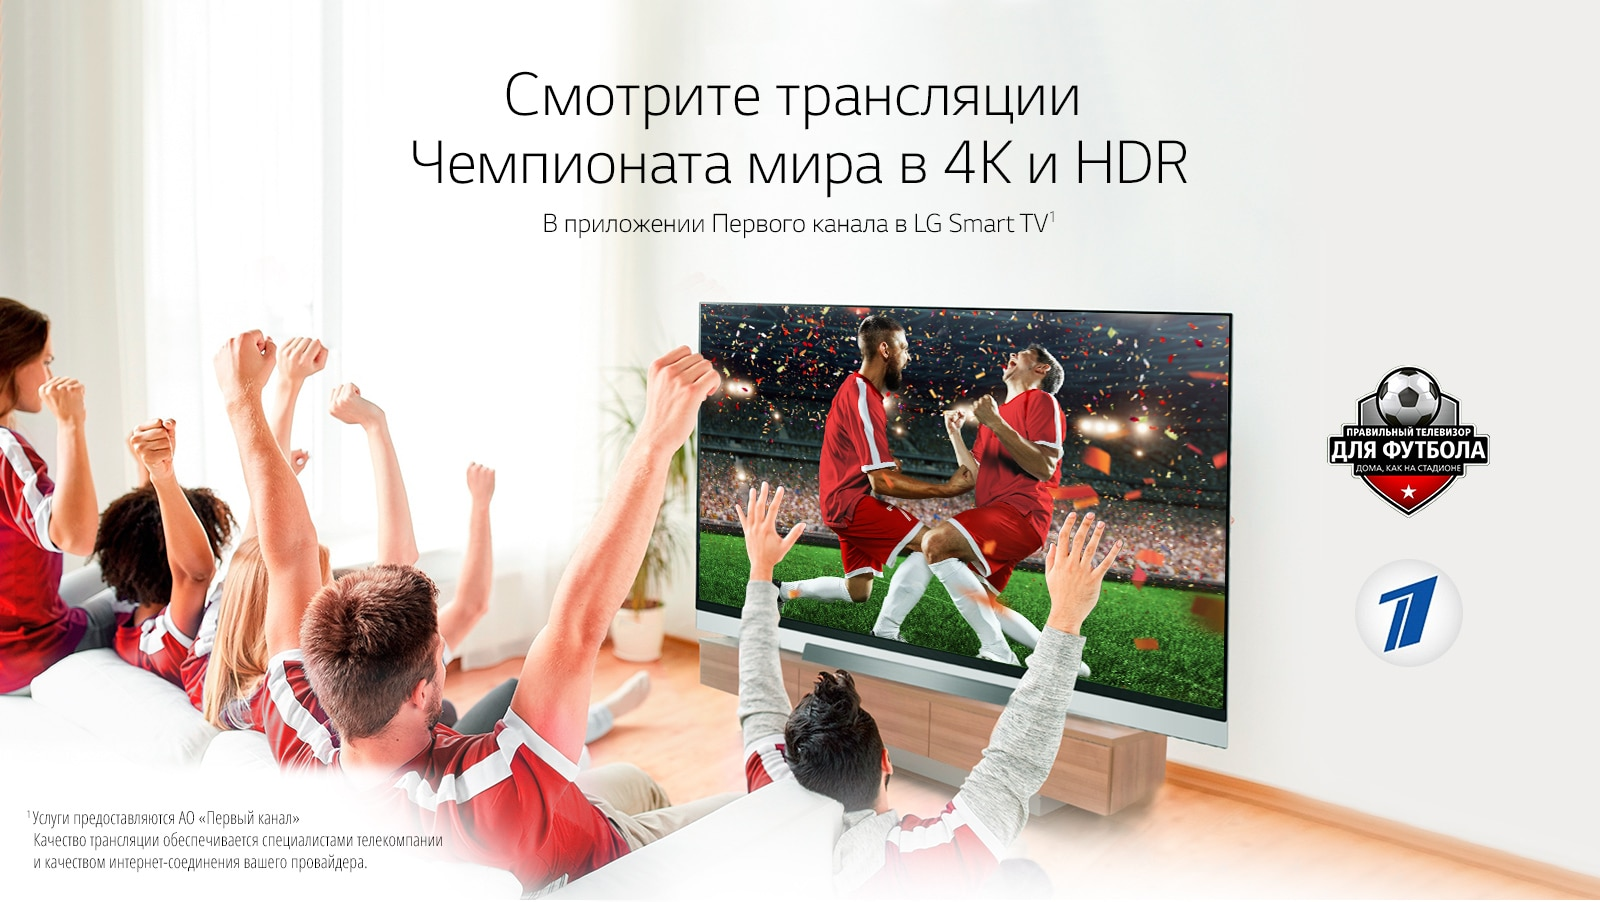 Телевизор LG 65SK8100 SUPER UHD телевизор с технологией Nano Cell™, Local Dimming,  Alpha 7 Processor, Smart TV, WebOs - фото СмоÑÑиÑе ÑÑанÑлÑÑии ЧемпионаÑа миÑа в 4Ри HDR